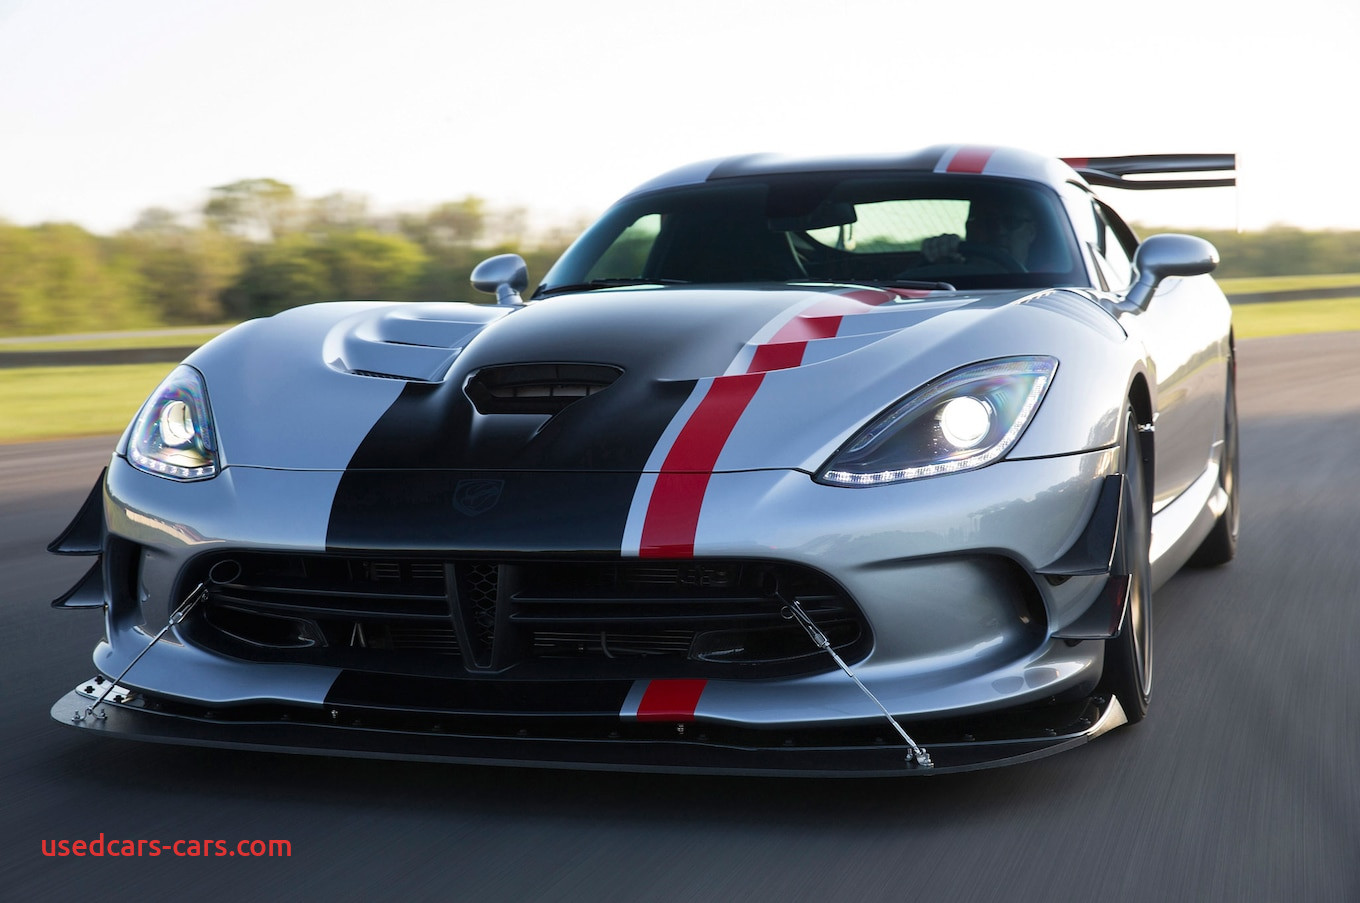 2016 Viper Lovely 2016 Dodge Viper Reviews and Rating Motor Trend